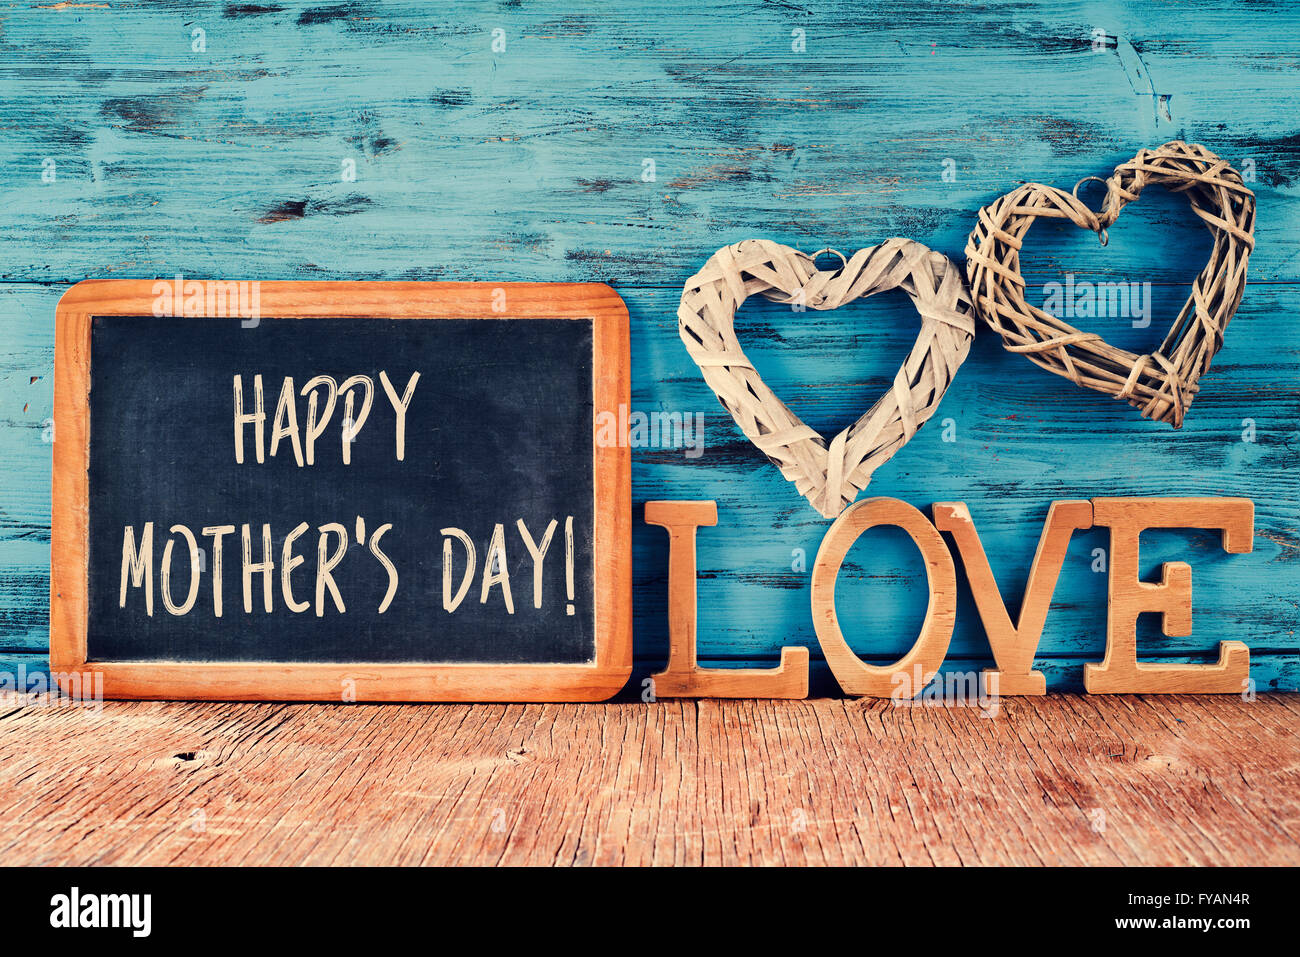 the text happy mothers day written in a chalkboard placed next to some wooden letters forming the word love and - Stock Image